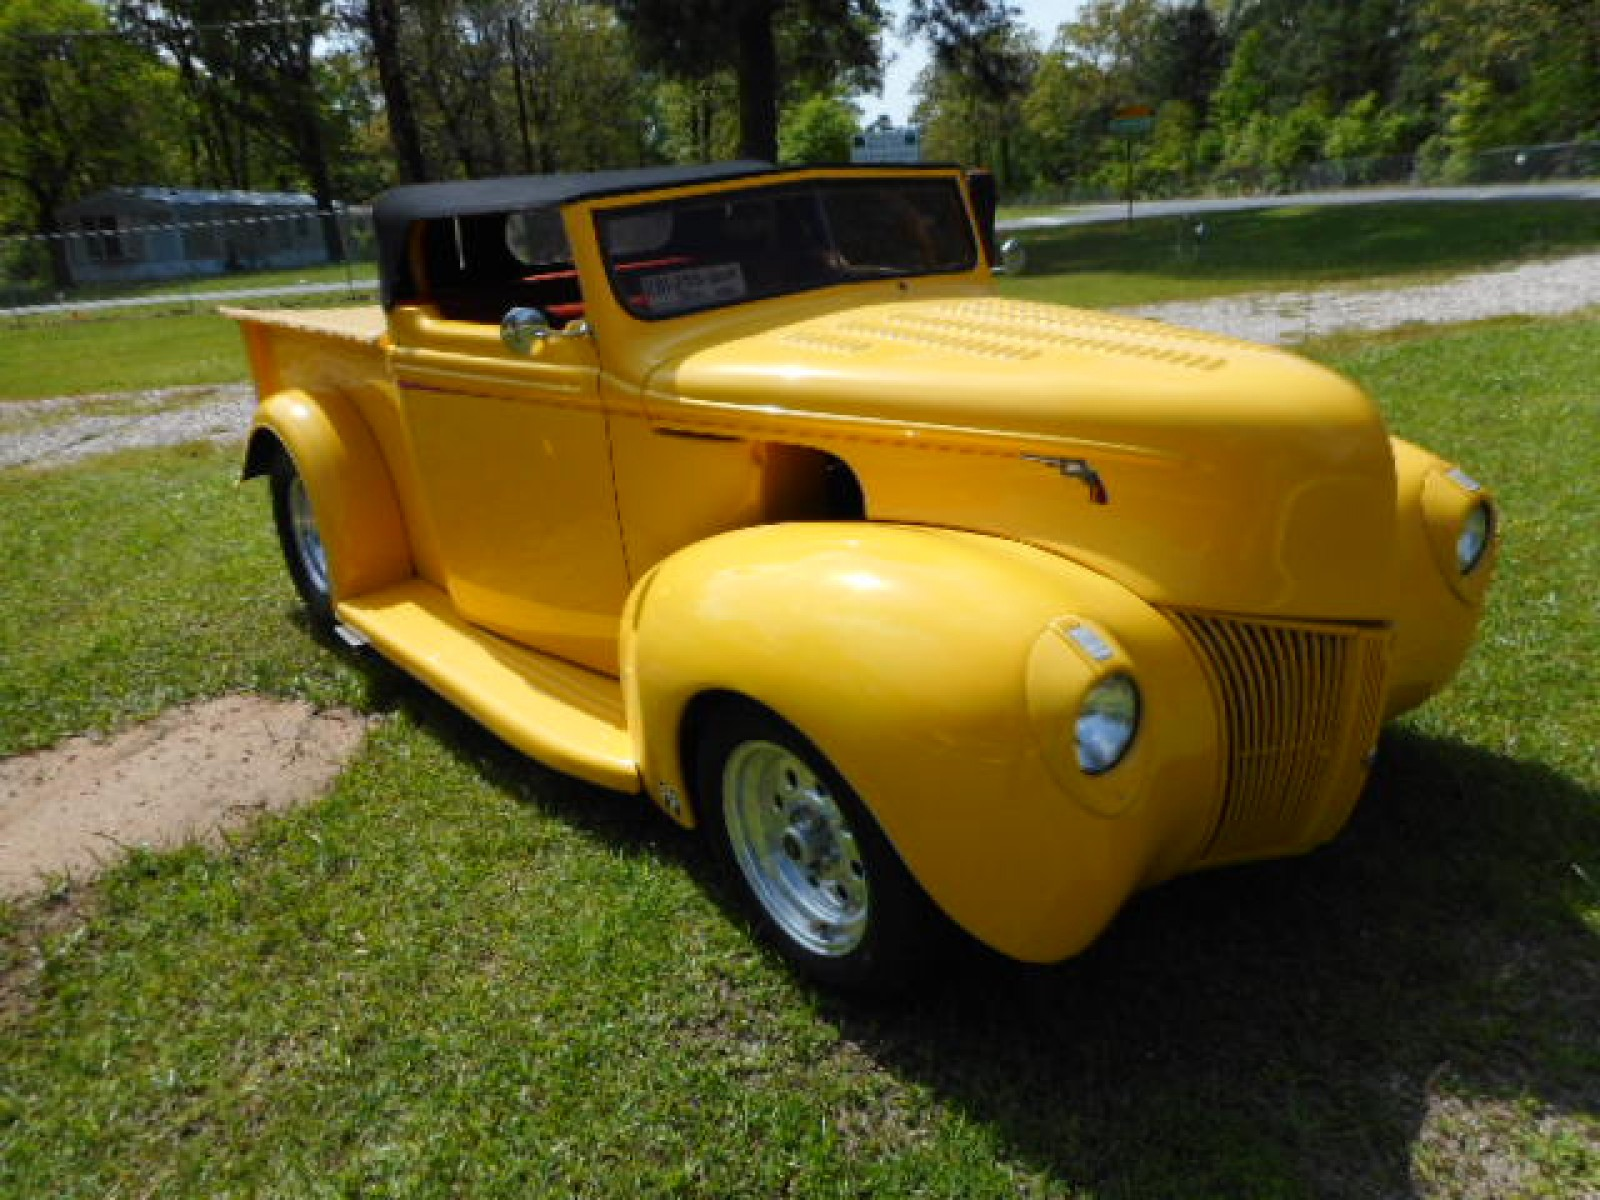 1941 Ford Roadster Streetrod Truck for sale on RYNO Classifieds